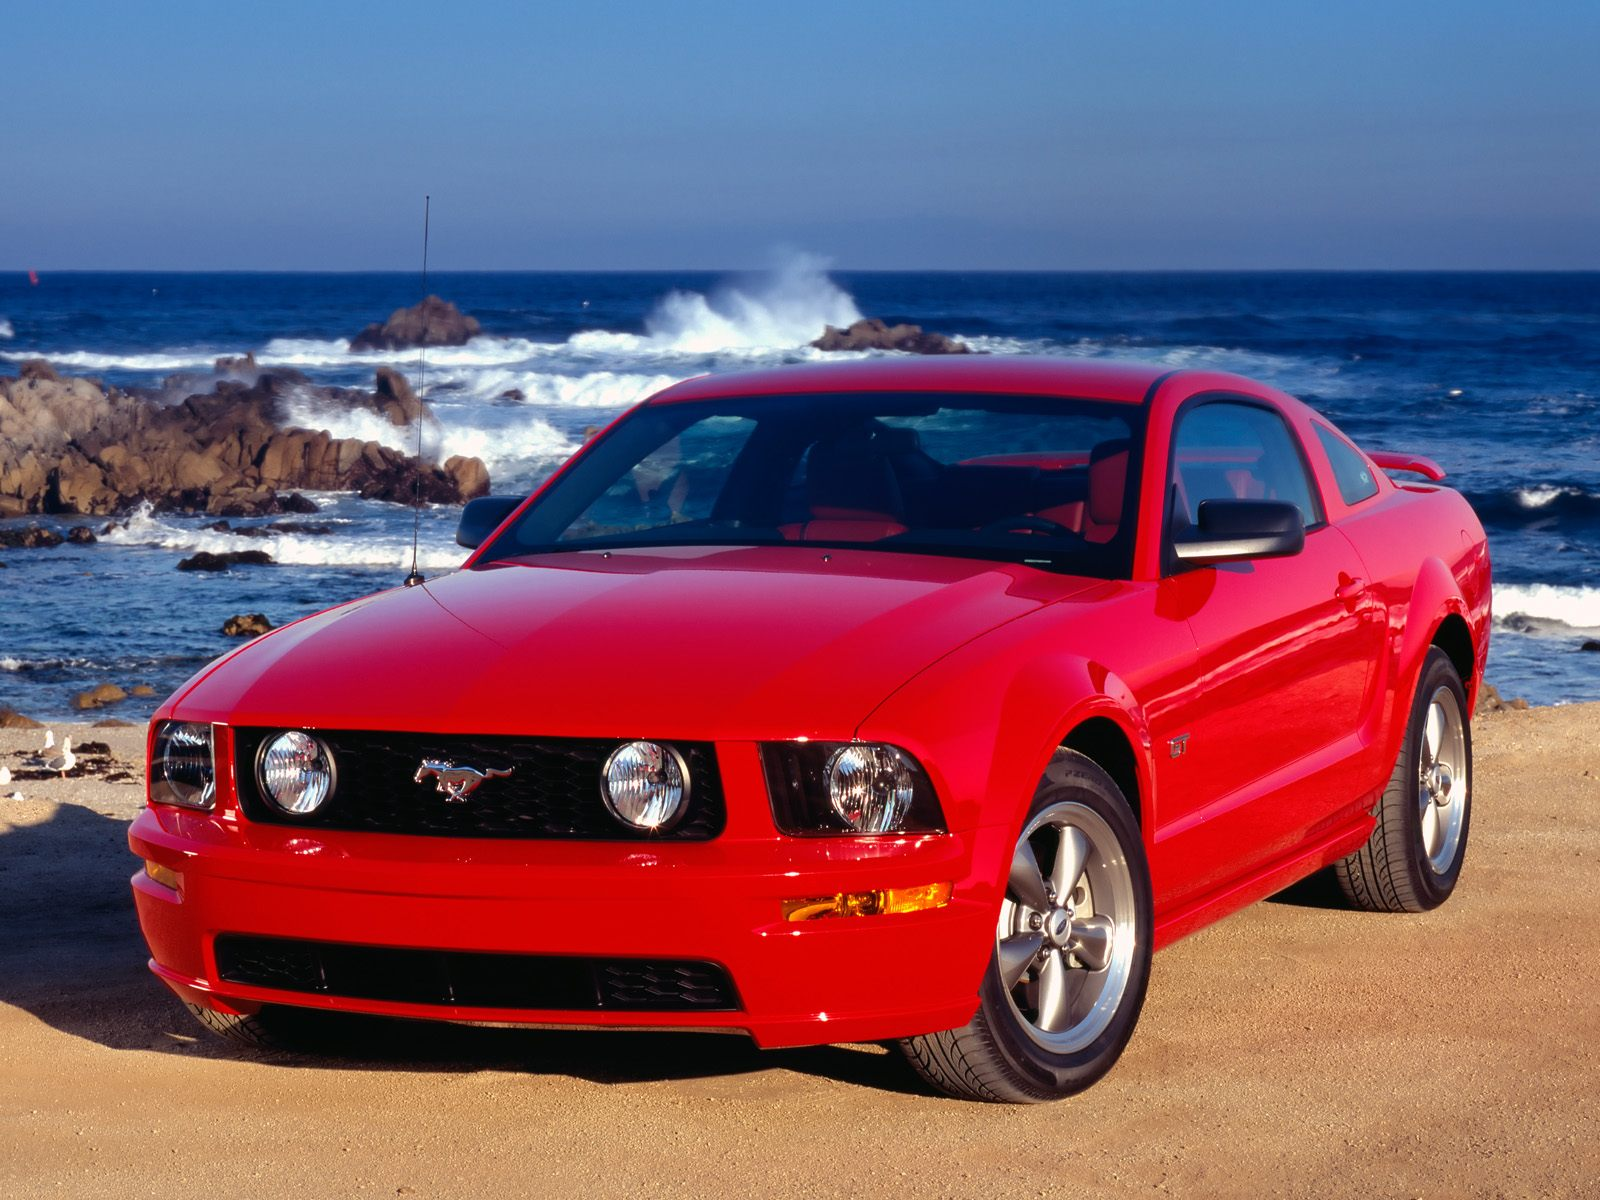 HQ 2005 Ford Mustang GT Coupe Wallpaper   HQ Wallpapers 1600x1200